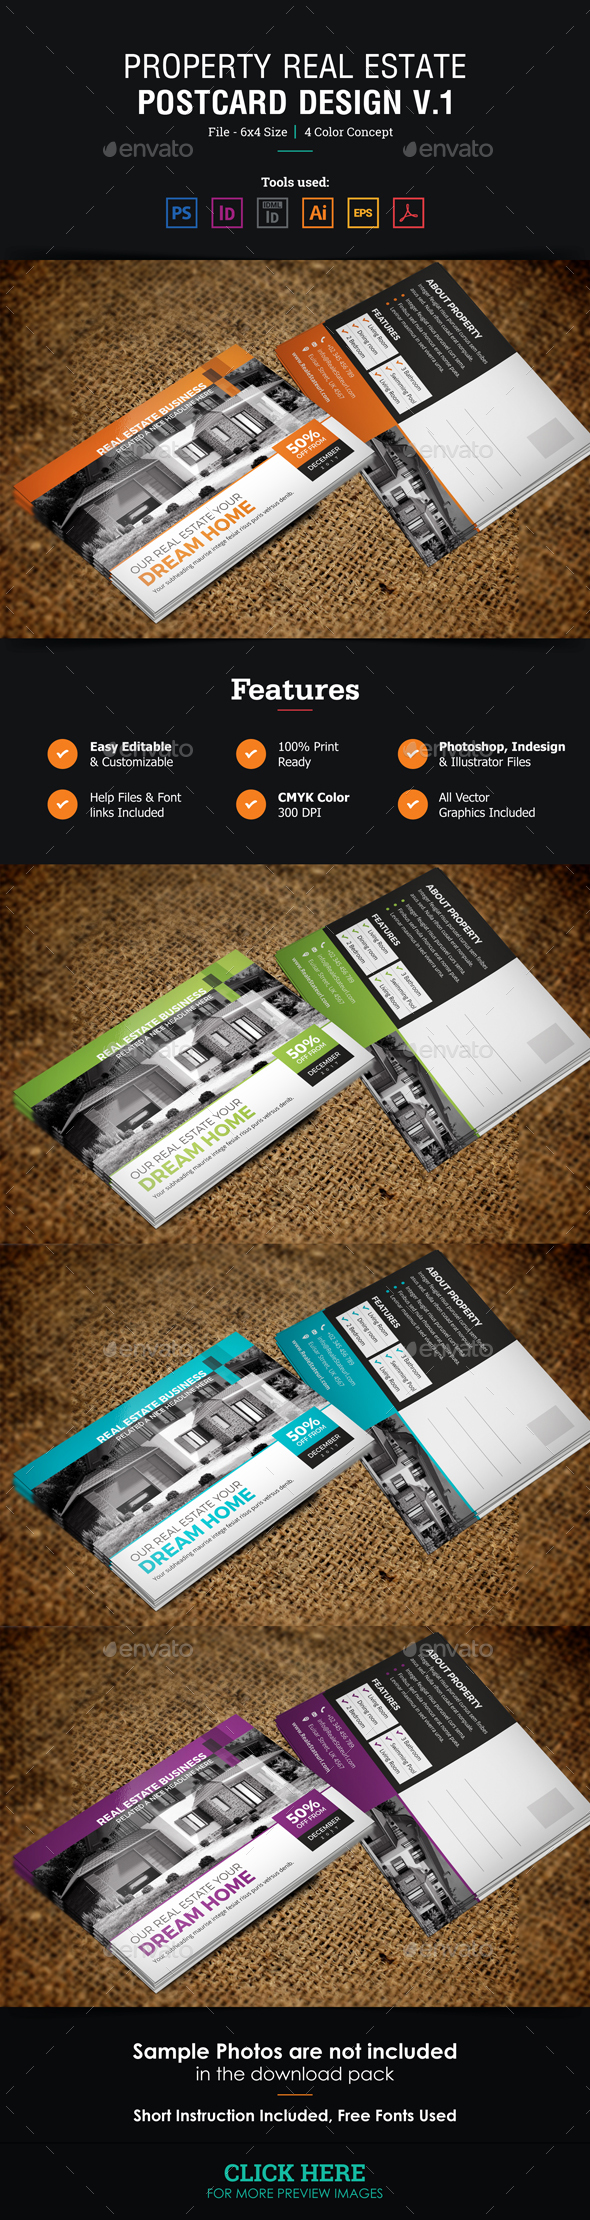 Real Estate Postcard Design v1 - Cards & Invites Print Templates